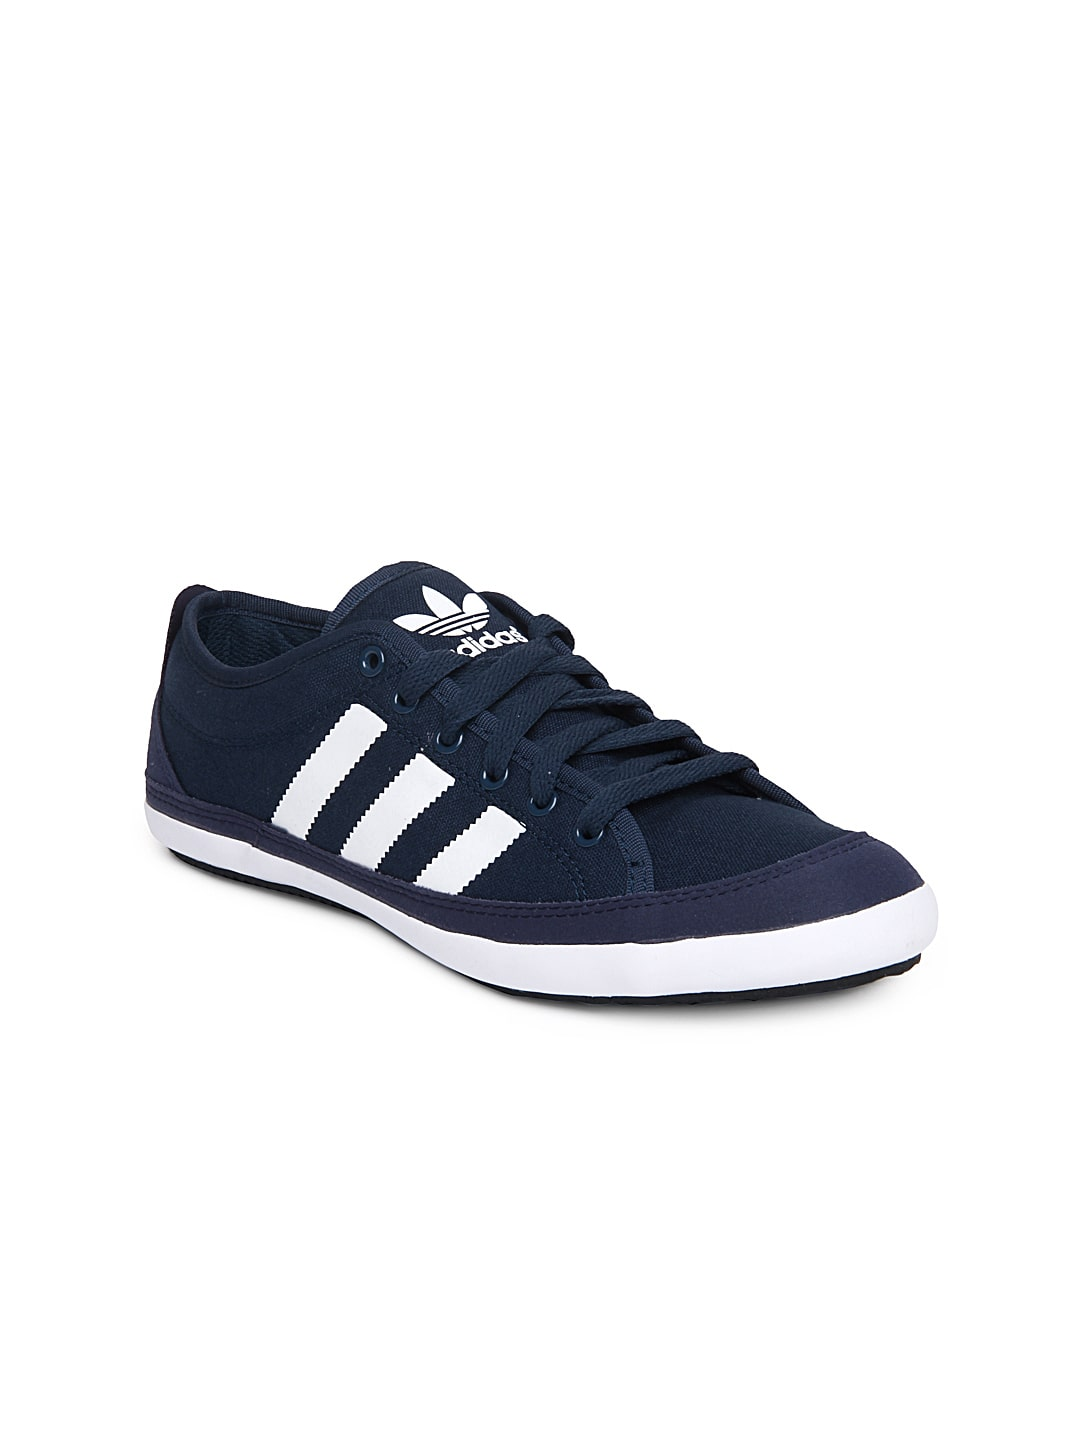 adidas originals basketball shoes india